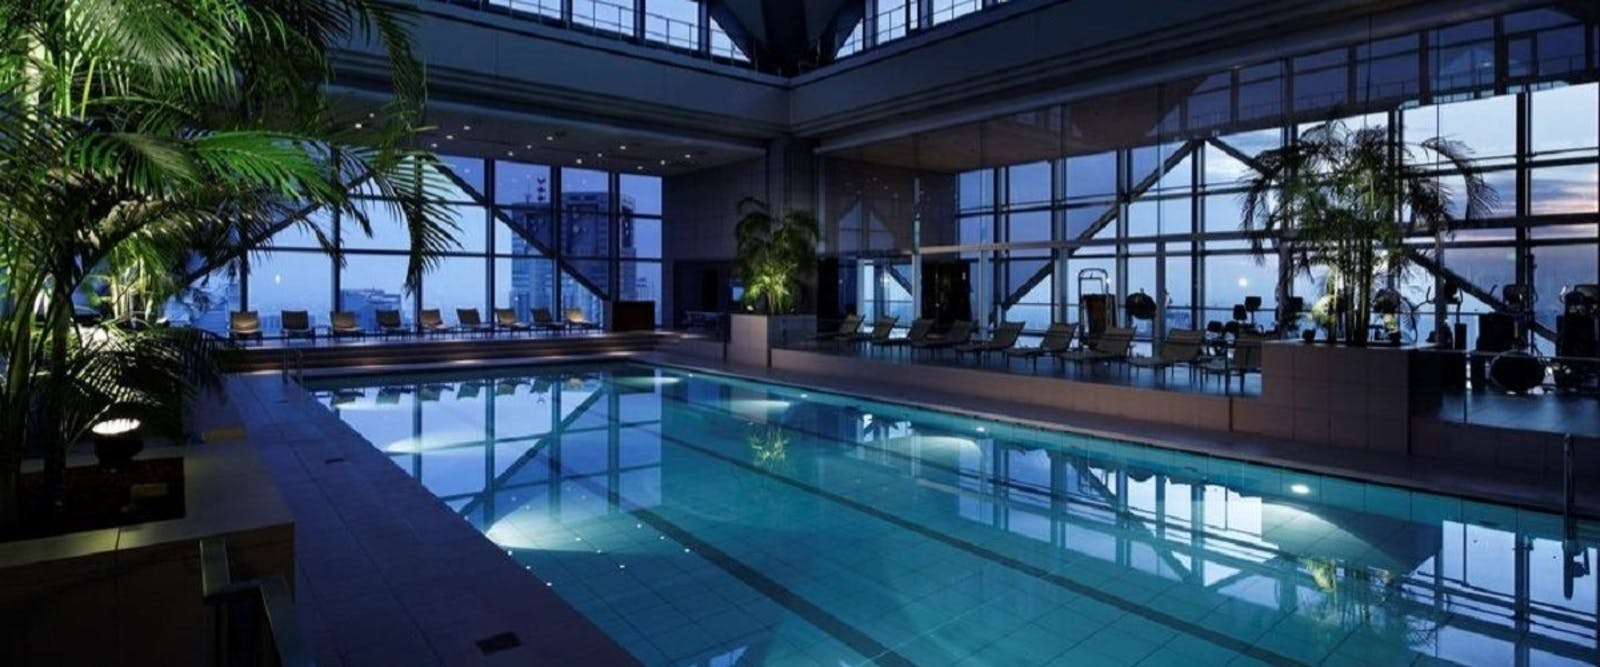 Swimming Pool at Park Hyatt Tokyo, Japan